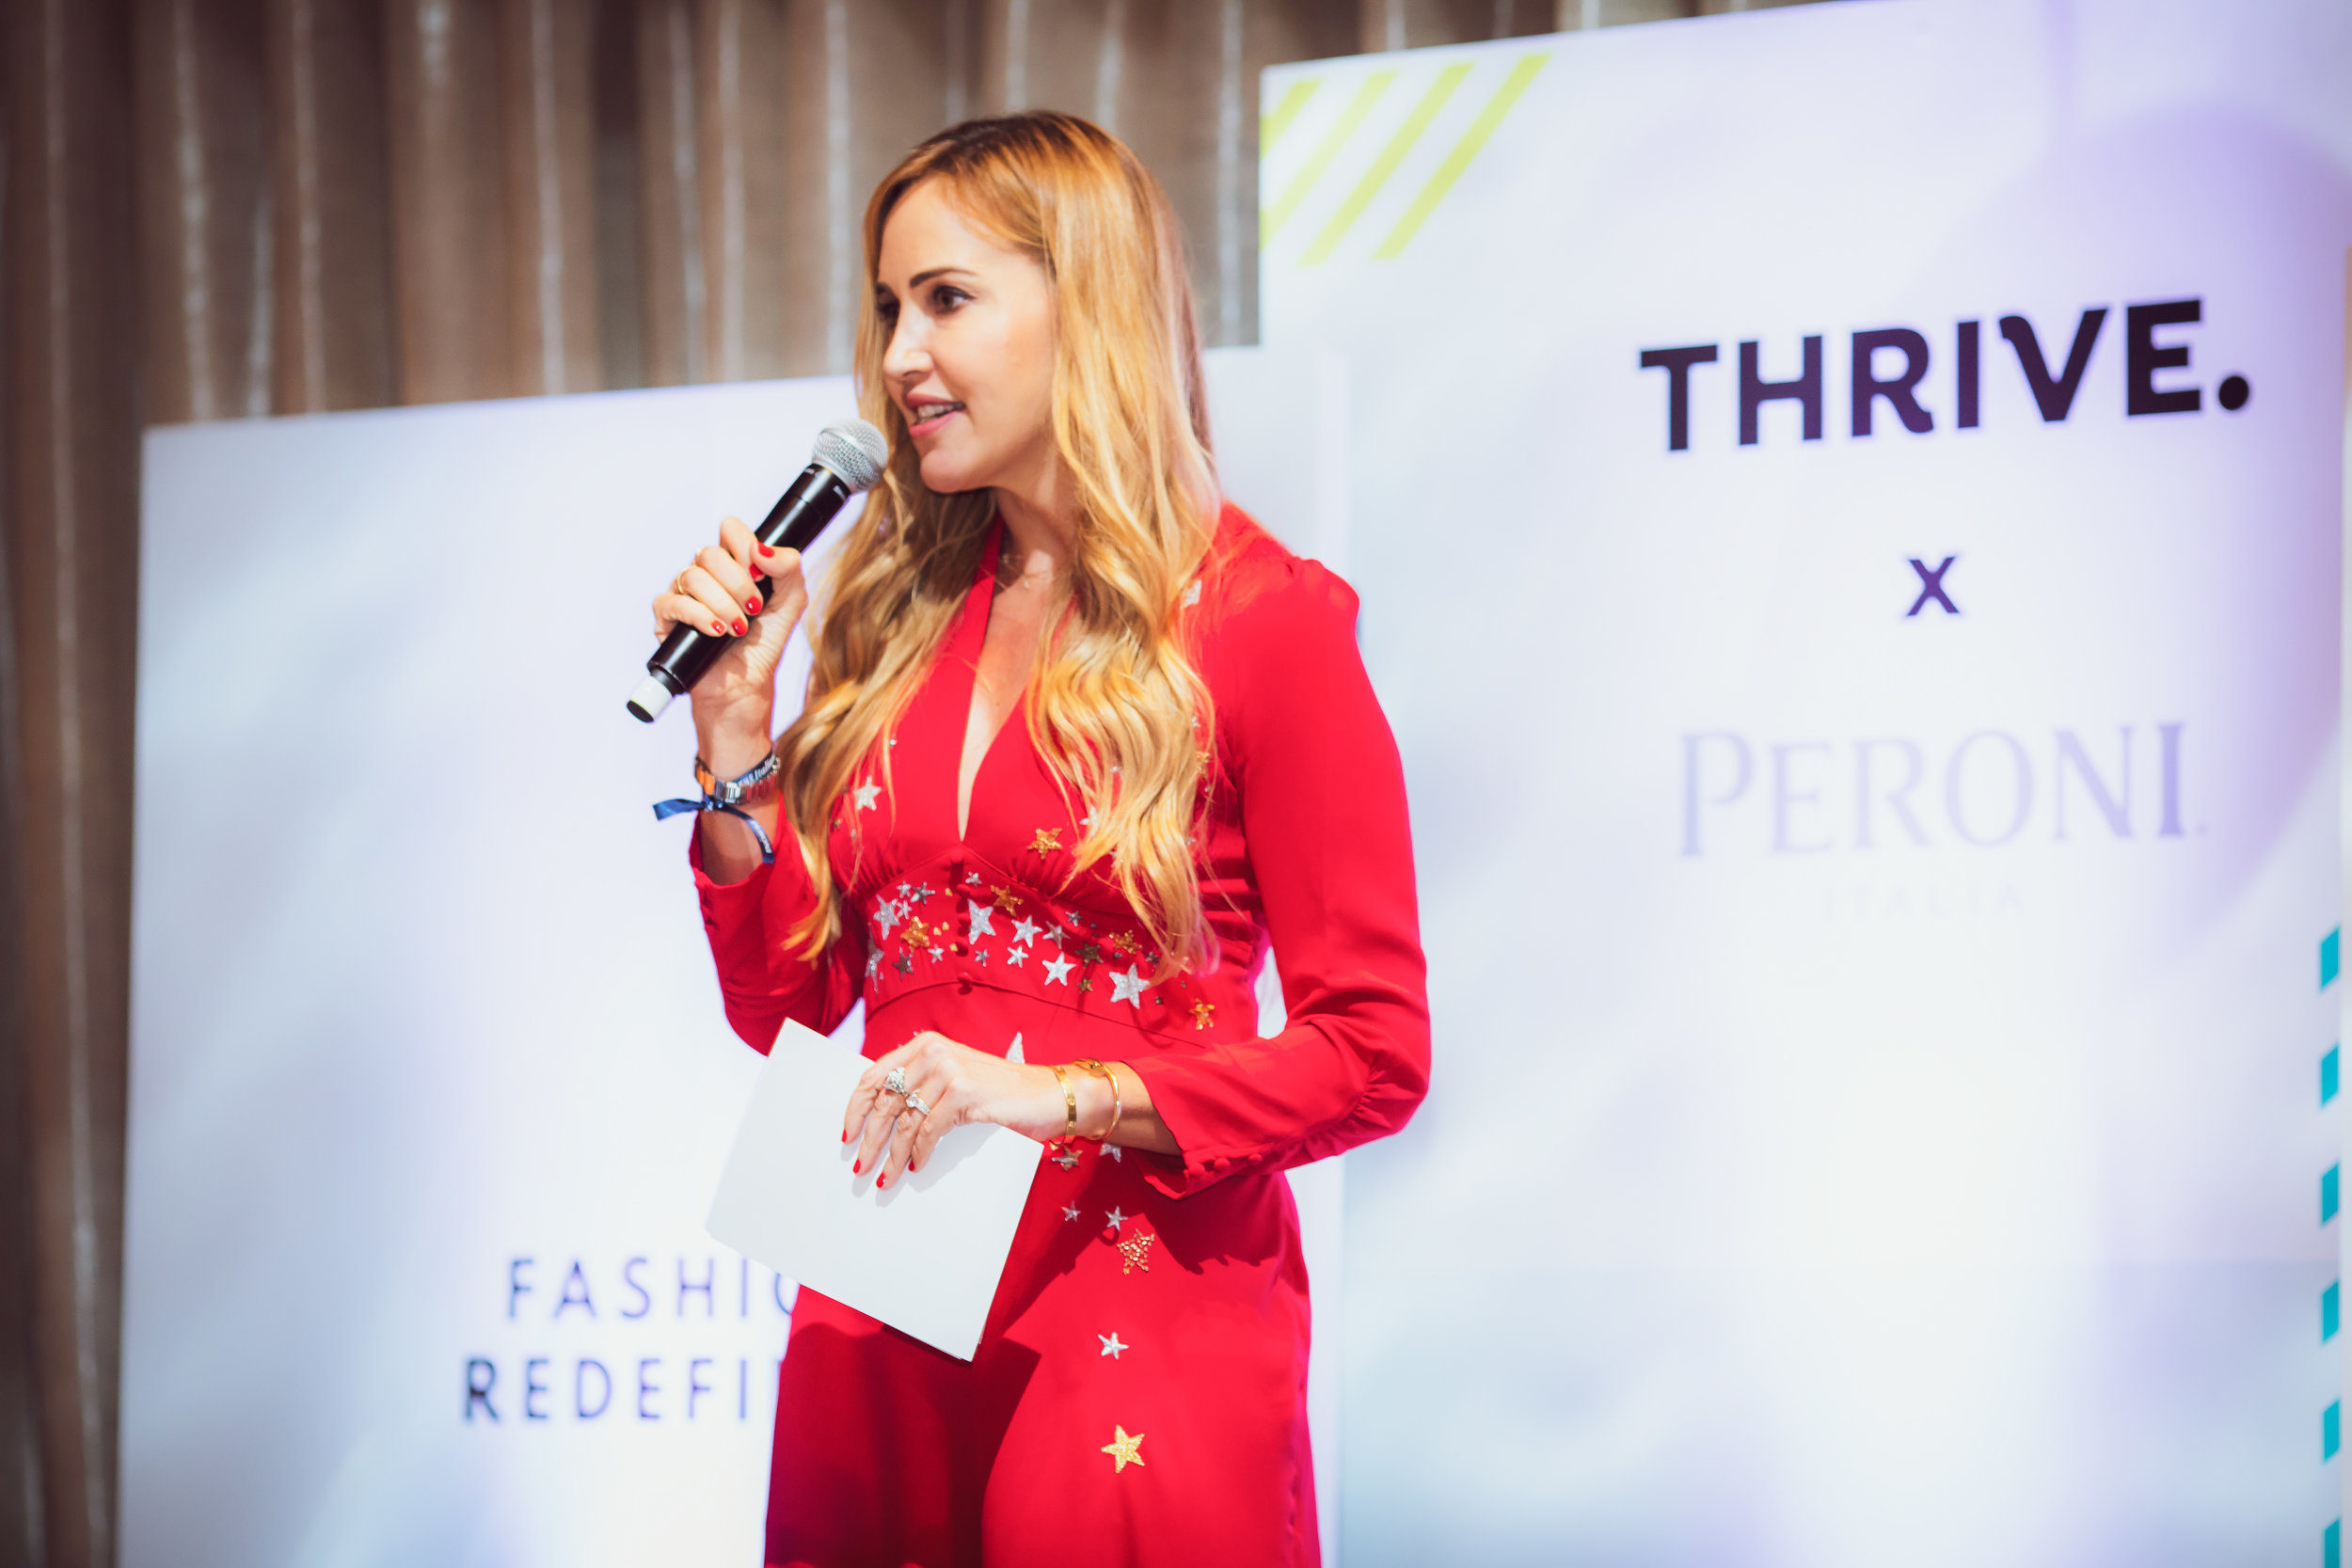 Speaking about my career and what fashion means to me